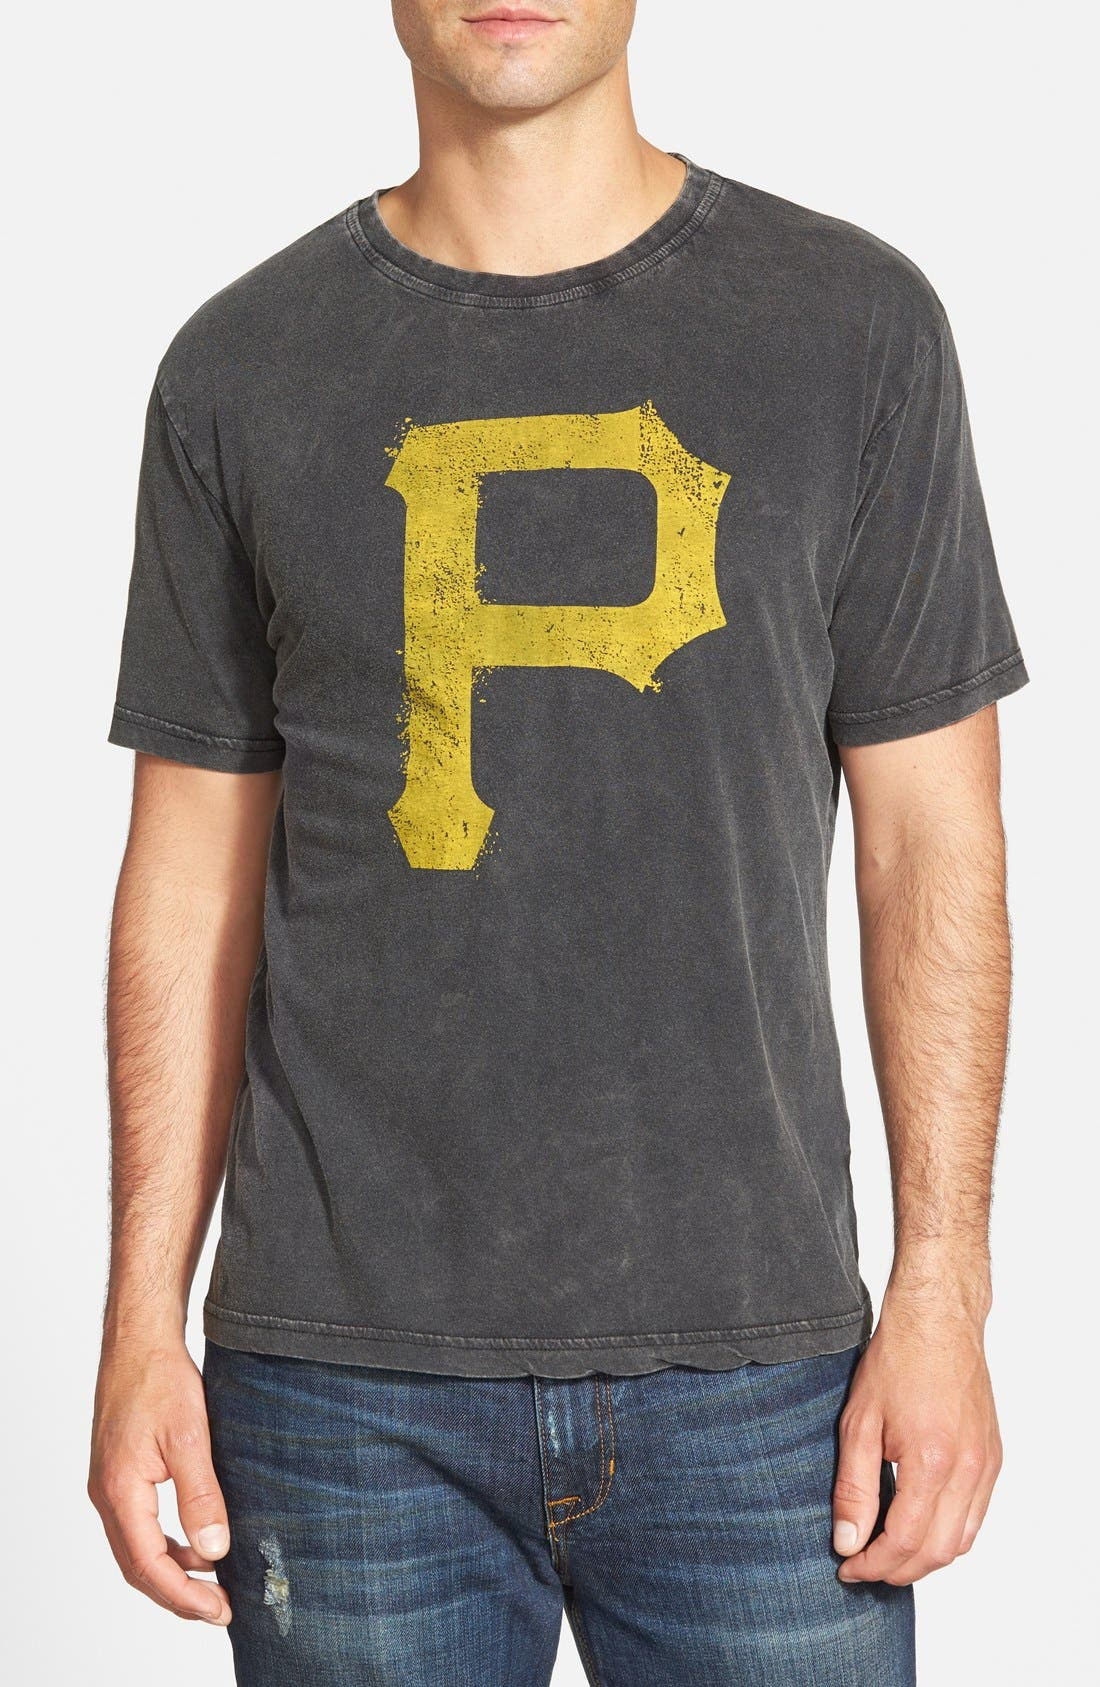 Red Jacket 'Pittsburgh Pirates - Scatter' Burnout T-Shirt